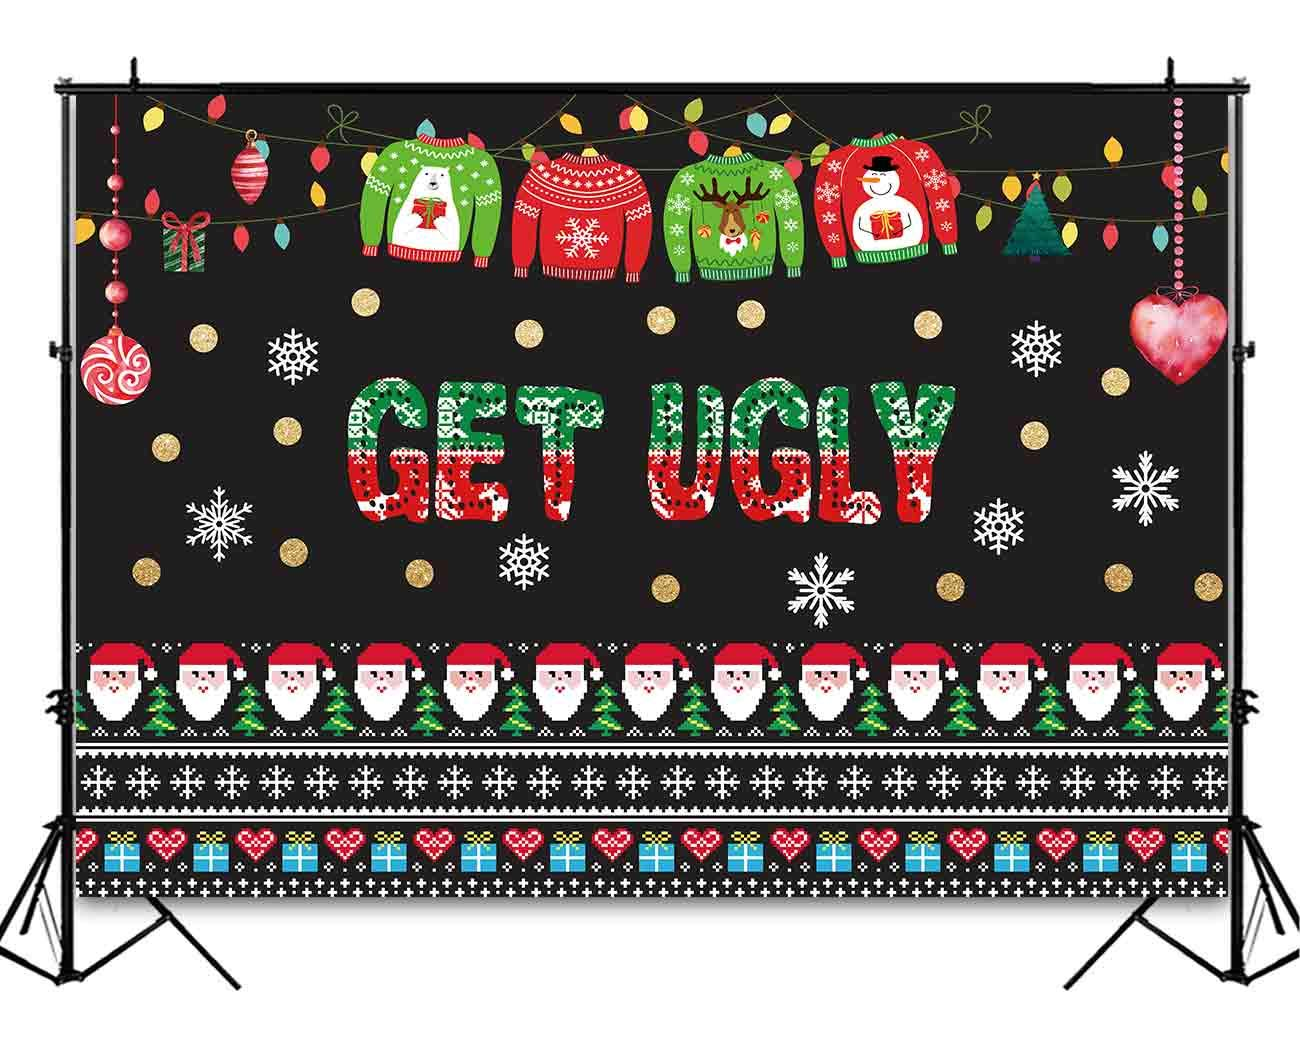 Funnytree 7x5ft Ugly Christmas Sweater Party Backdrop Tacky Blackboard  Winter Xmas Photography Background Elfed Kids Chalkboard Photobooth  Decorations